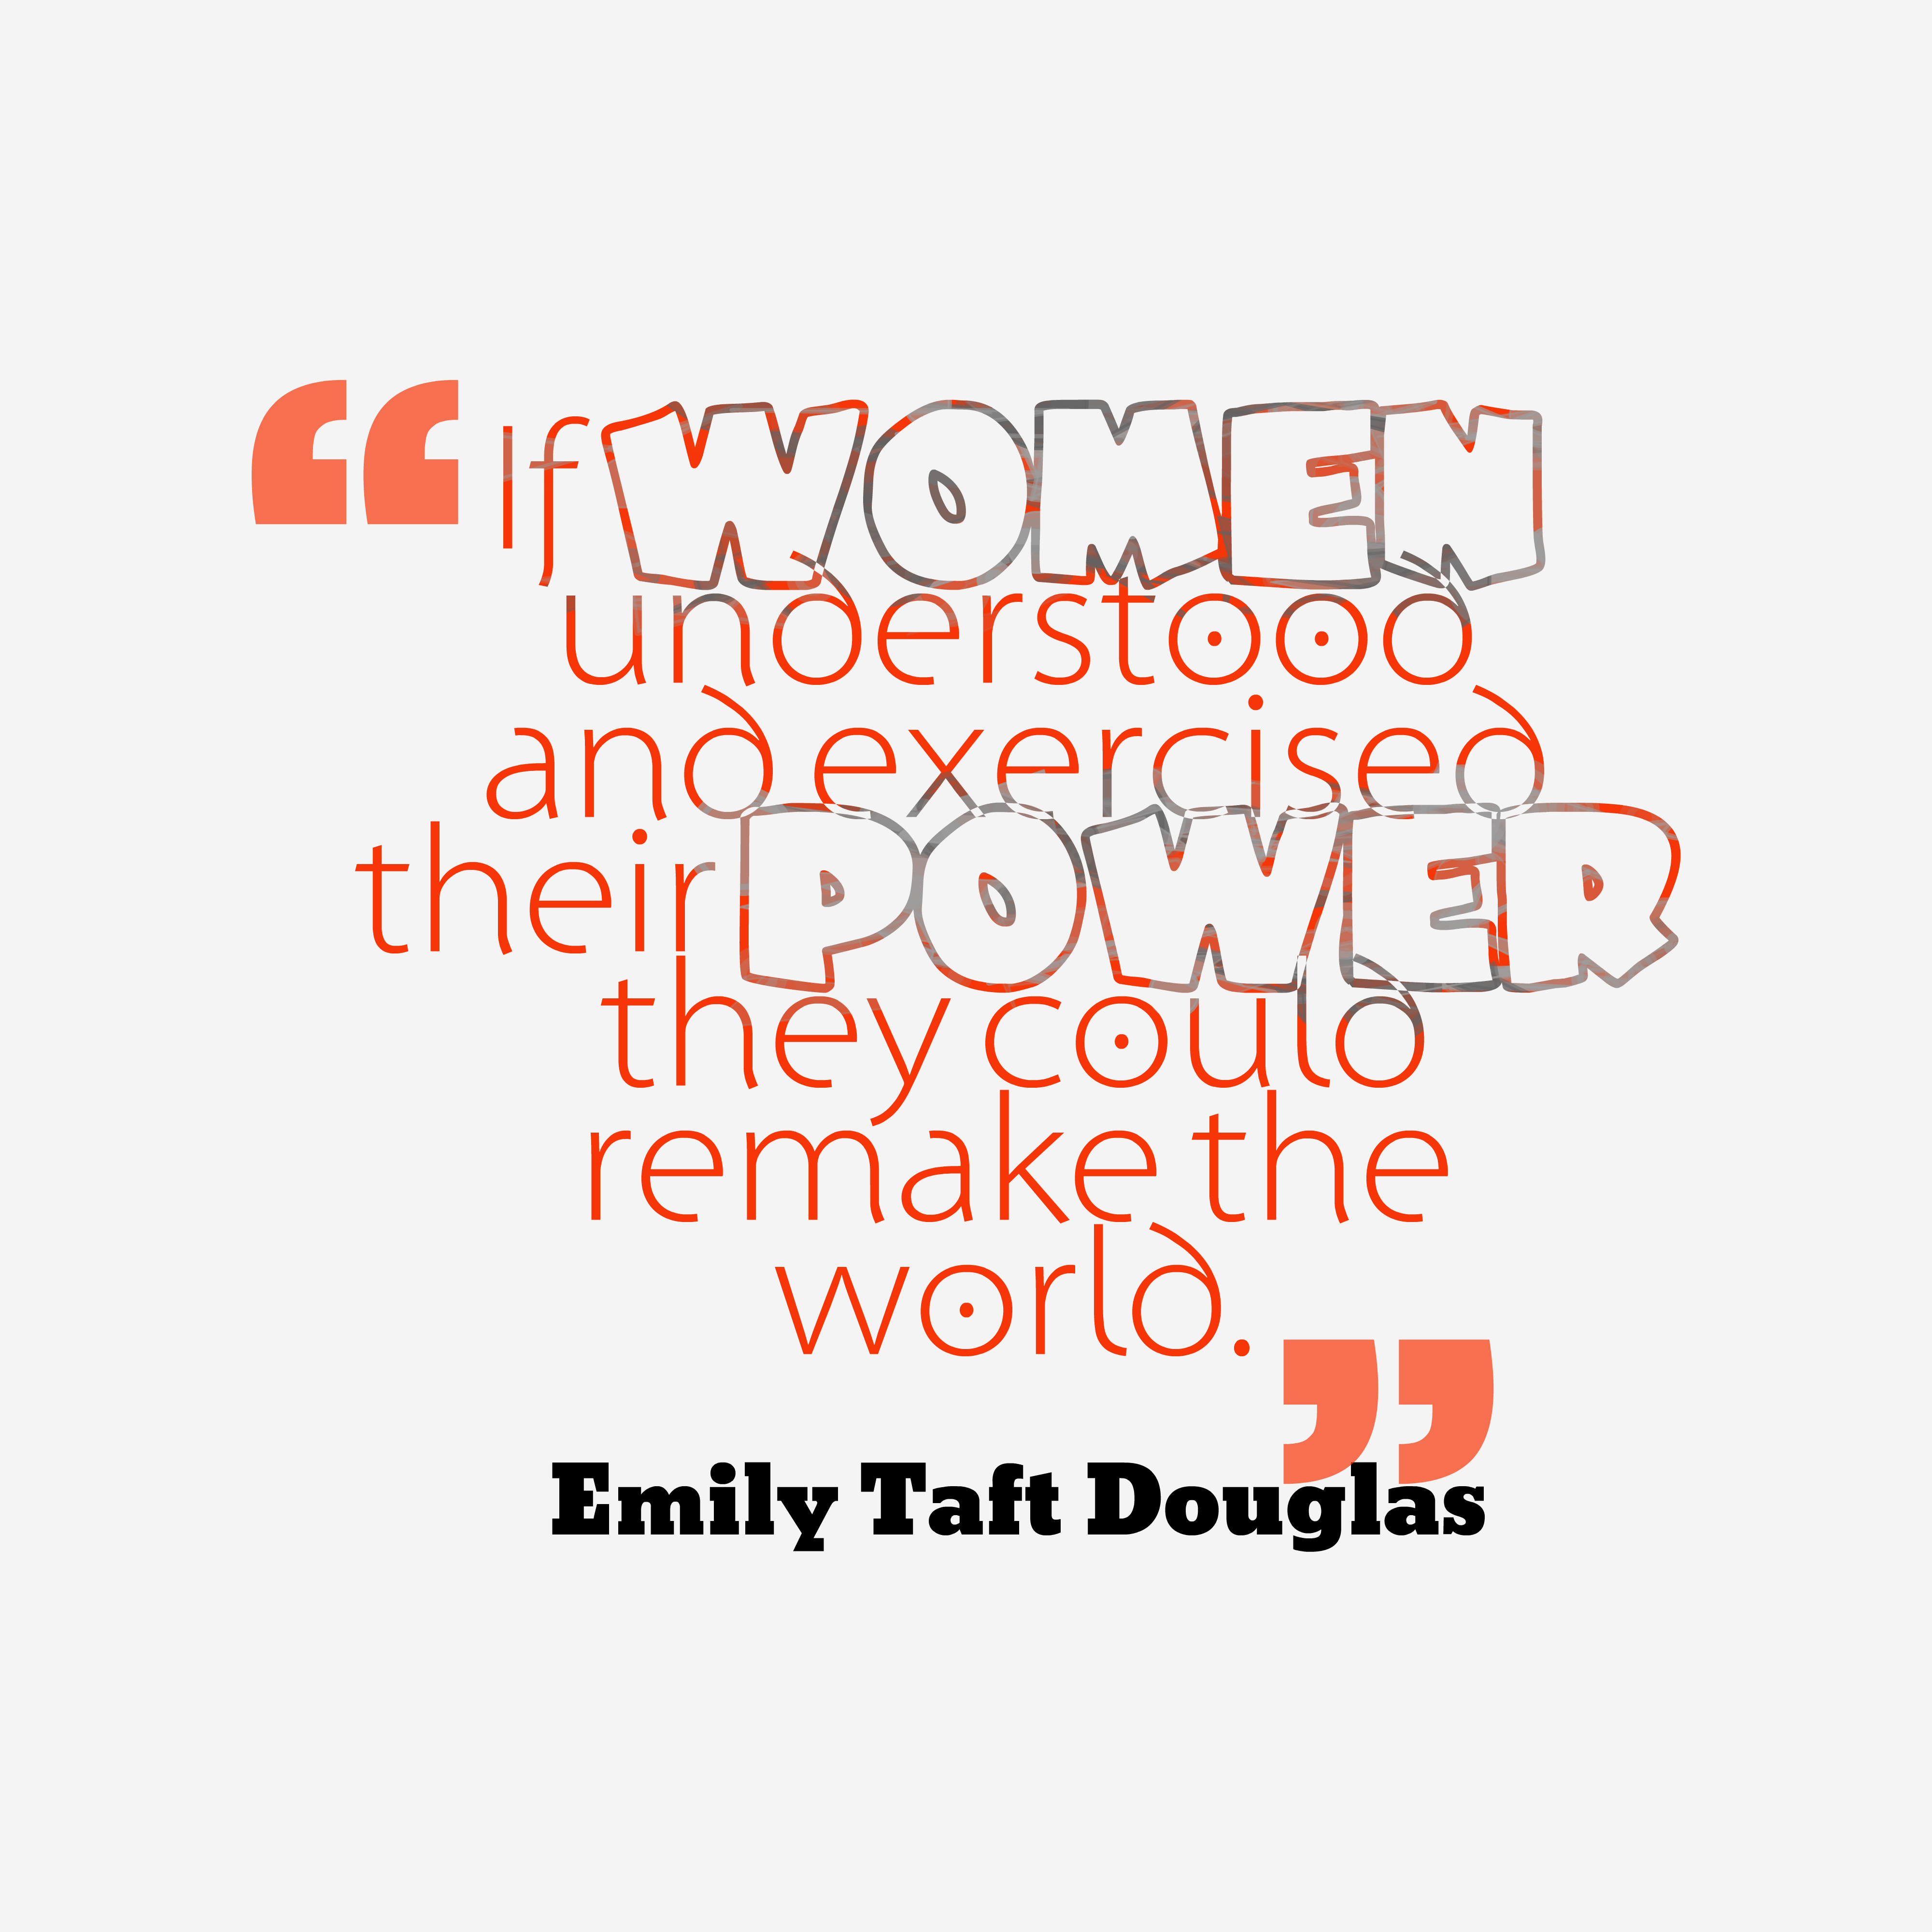 Women Power Quotes Picture If Women Understood  Quotescover